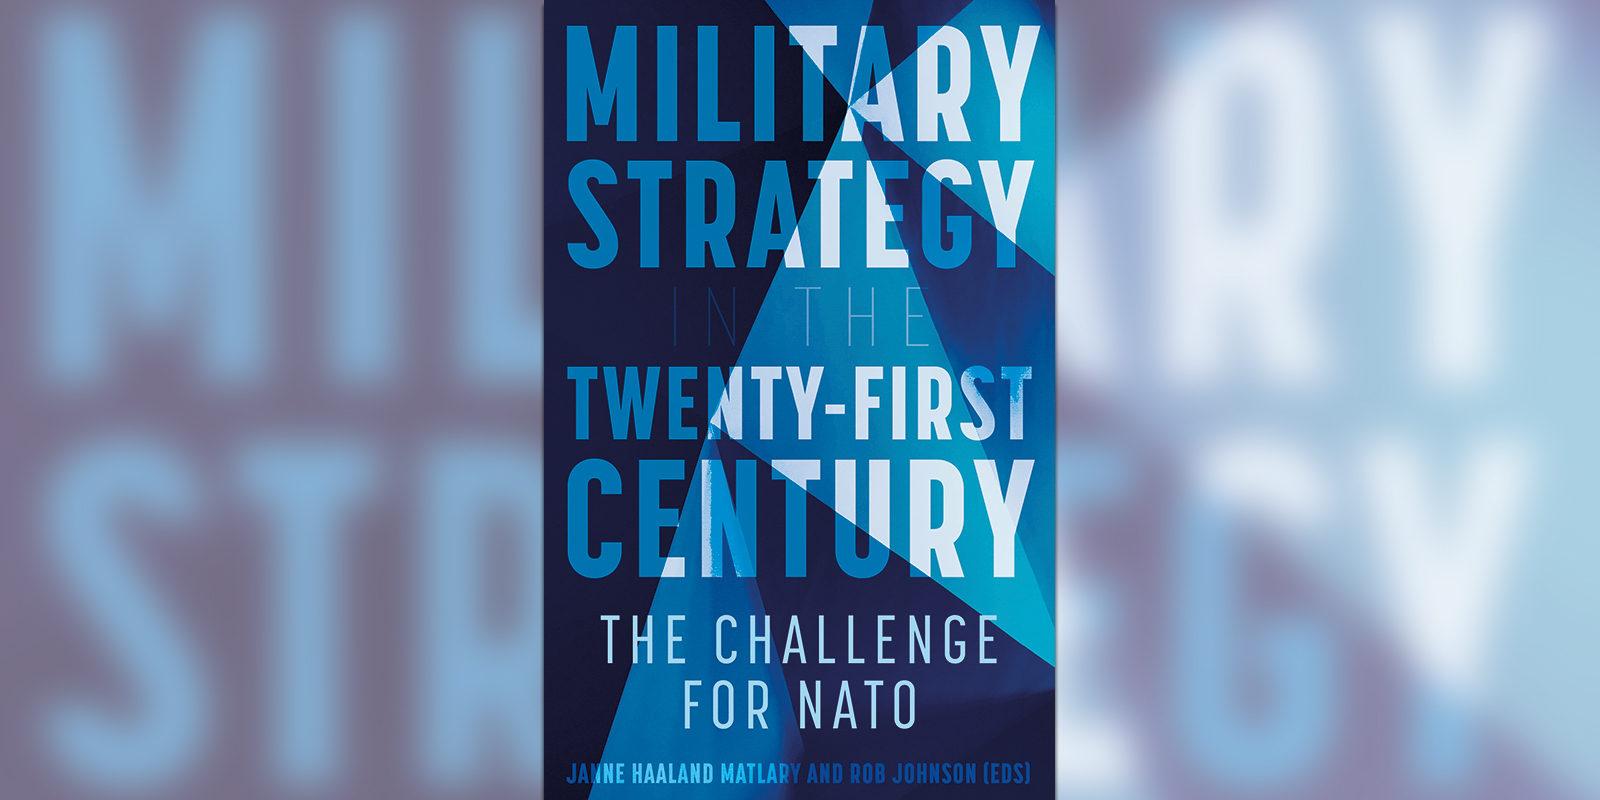 'Military Strategy in the 21st Century' book cover